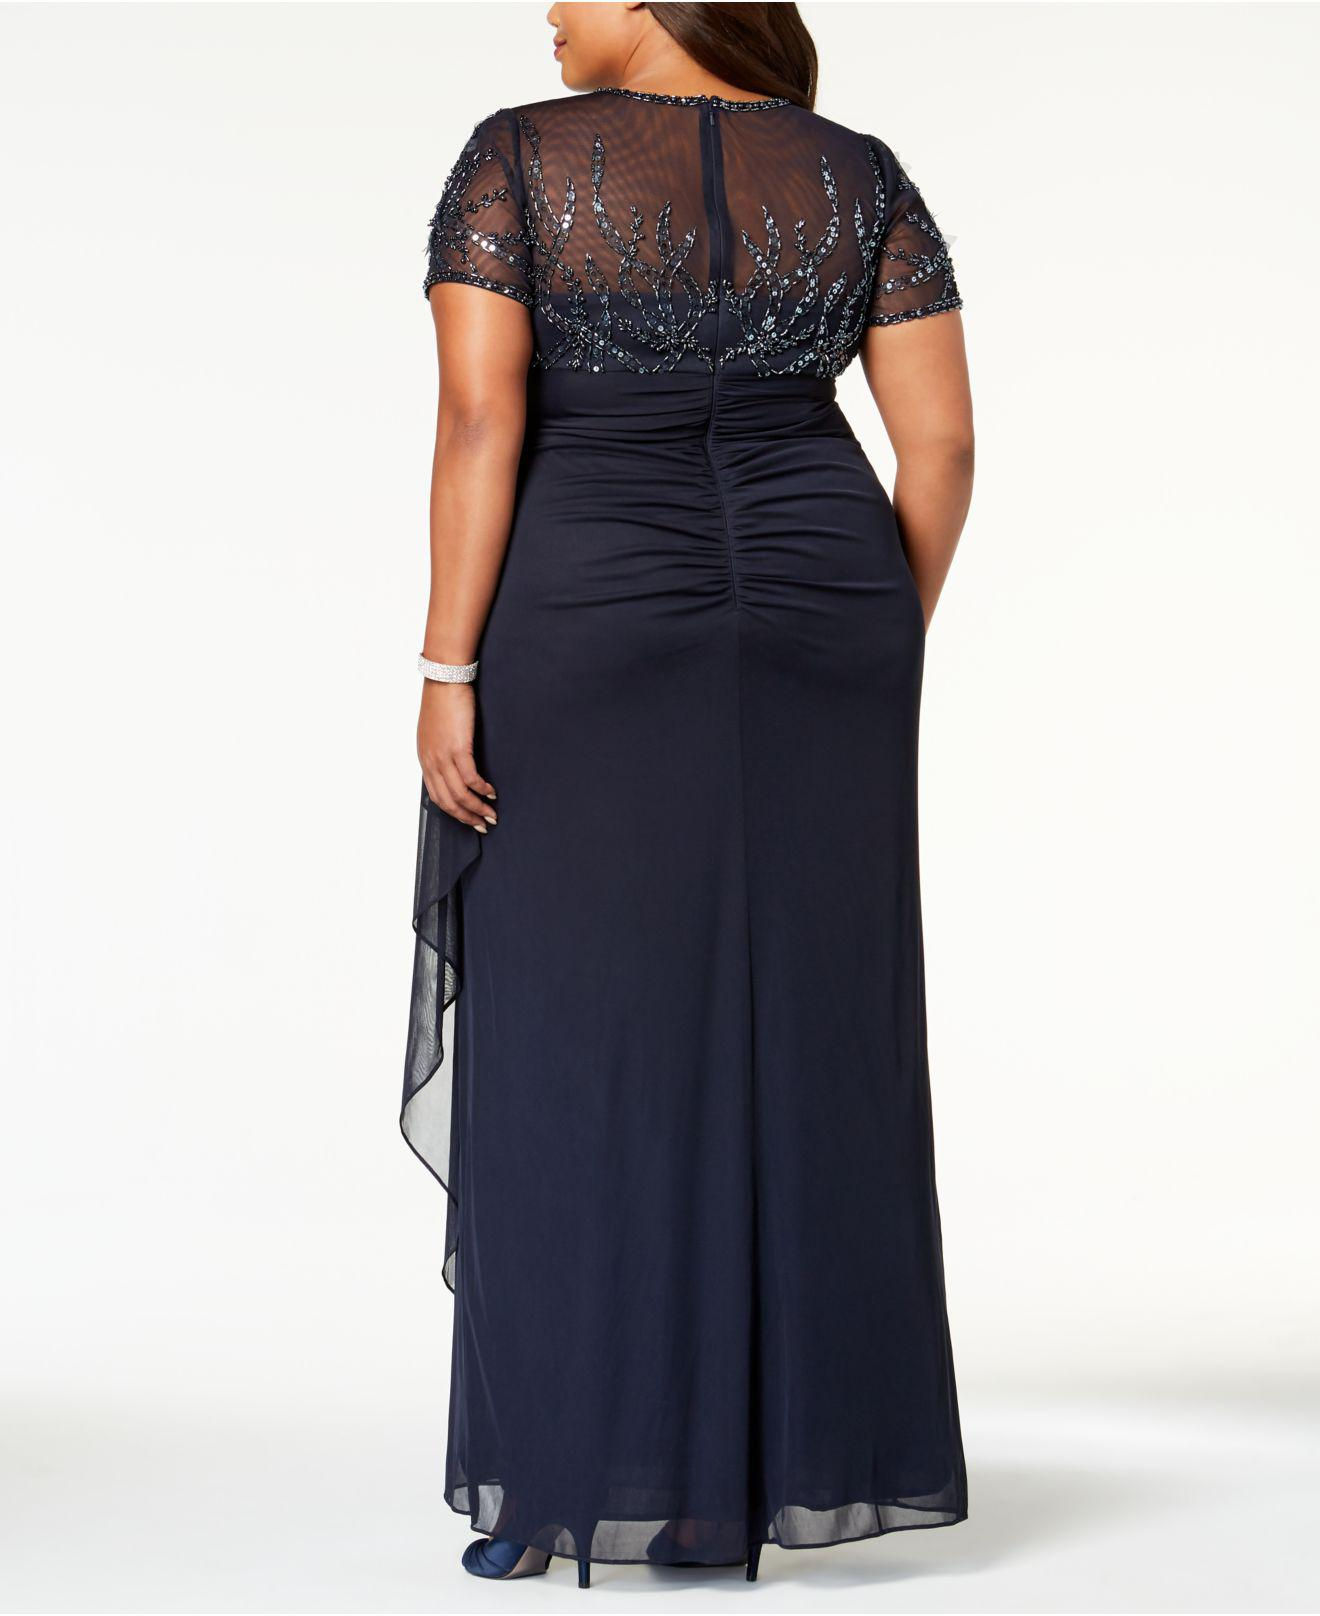 03e3f4619d9 Lyst - Xscape Plus Size Embellished Empire-waist Gown in Blue